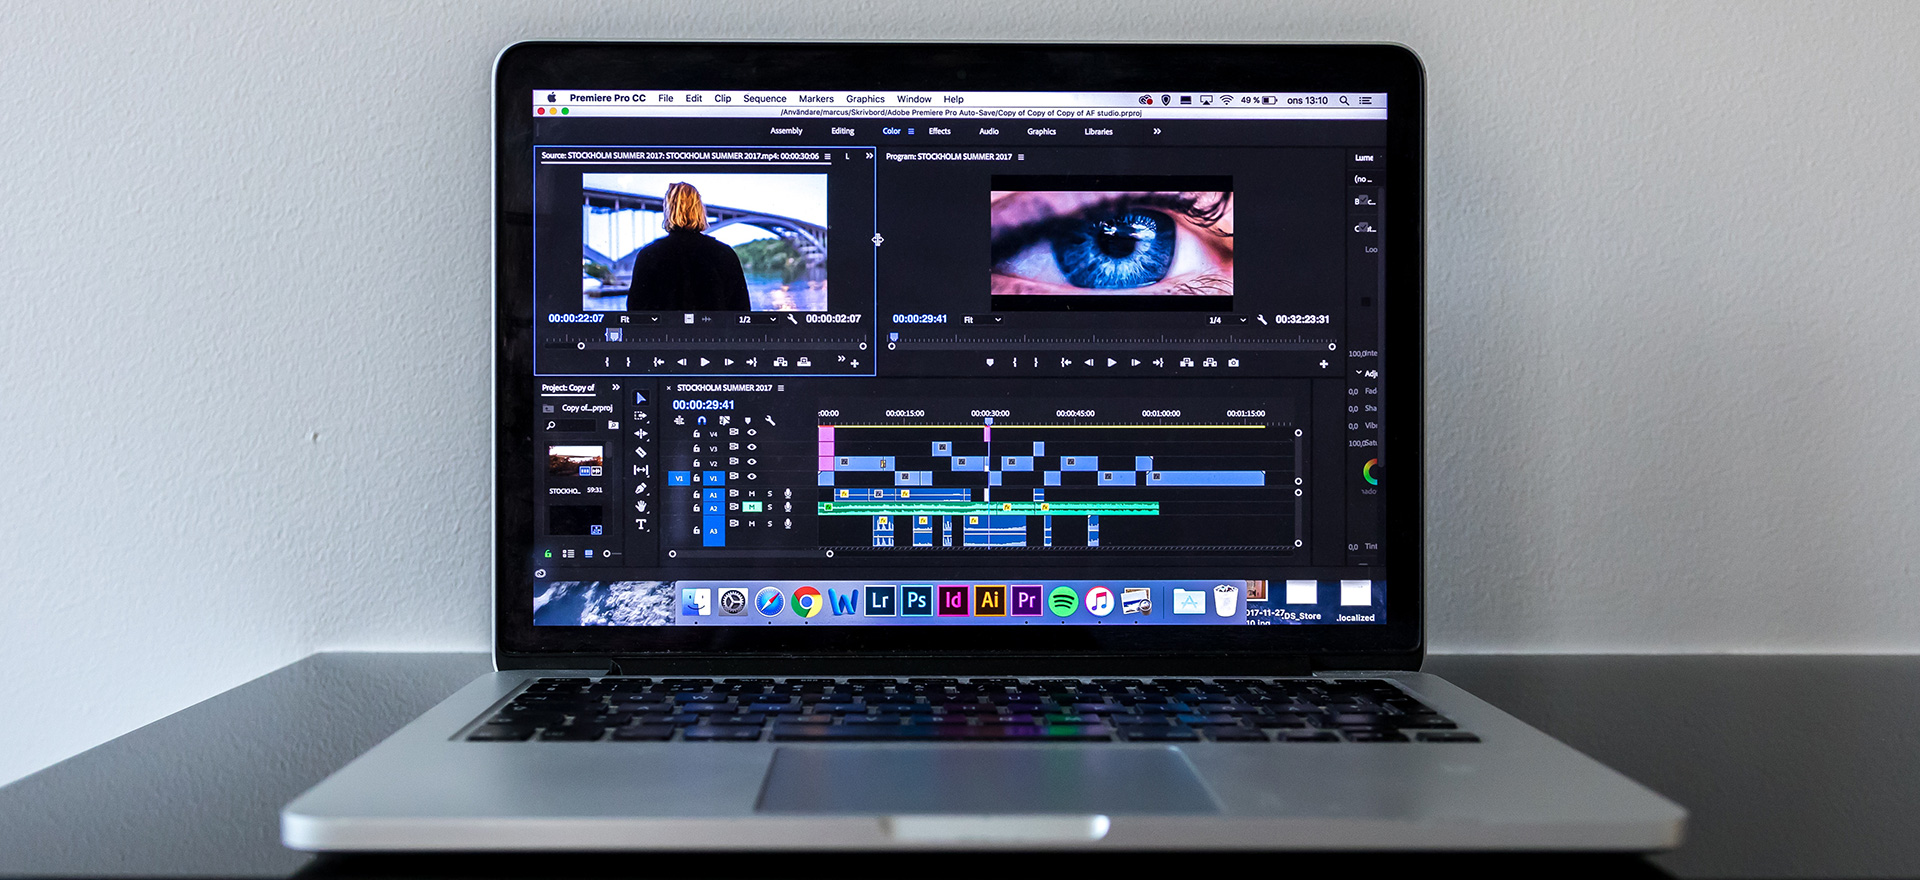 The feature known from Photoshop will work in movies  You can now delete  unwanted items from recordings